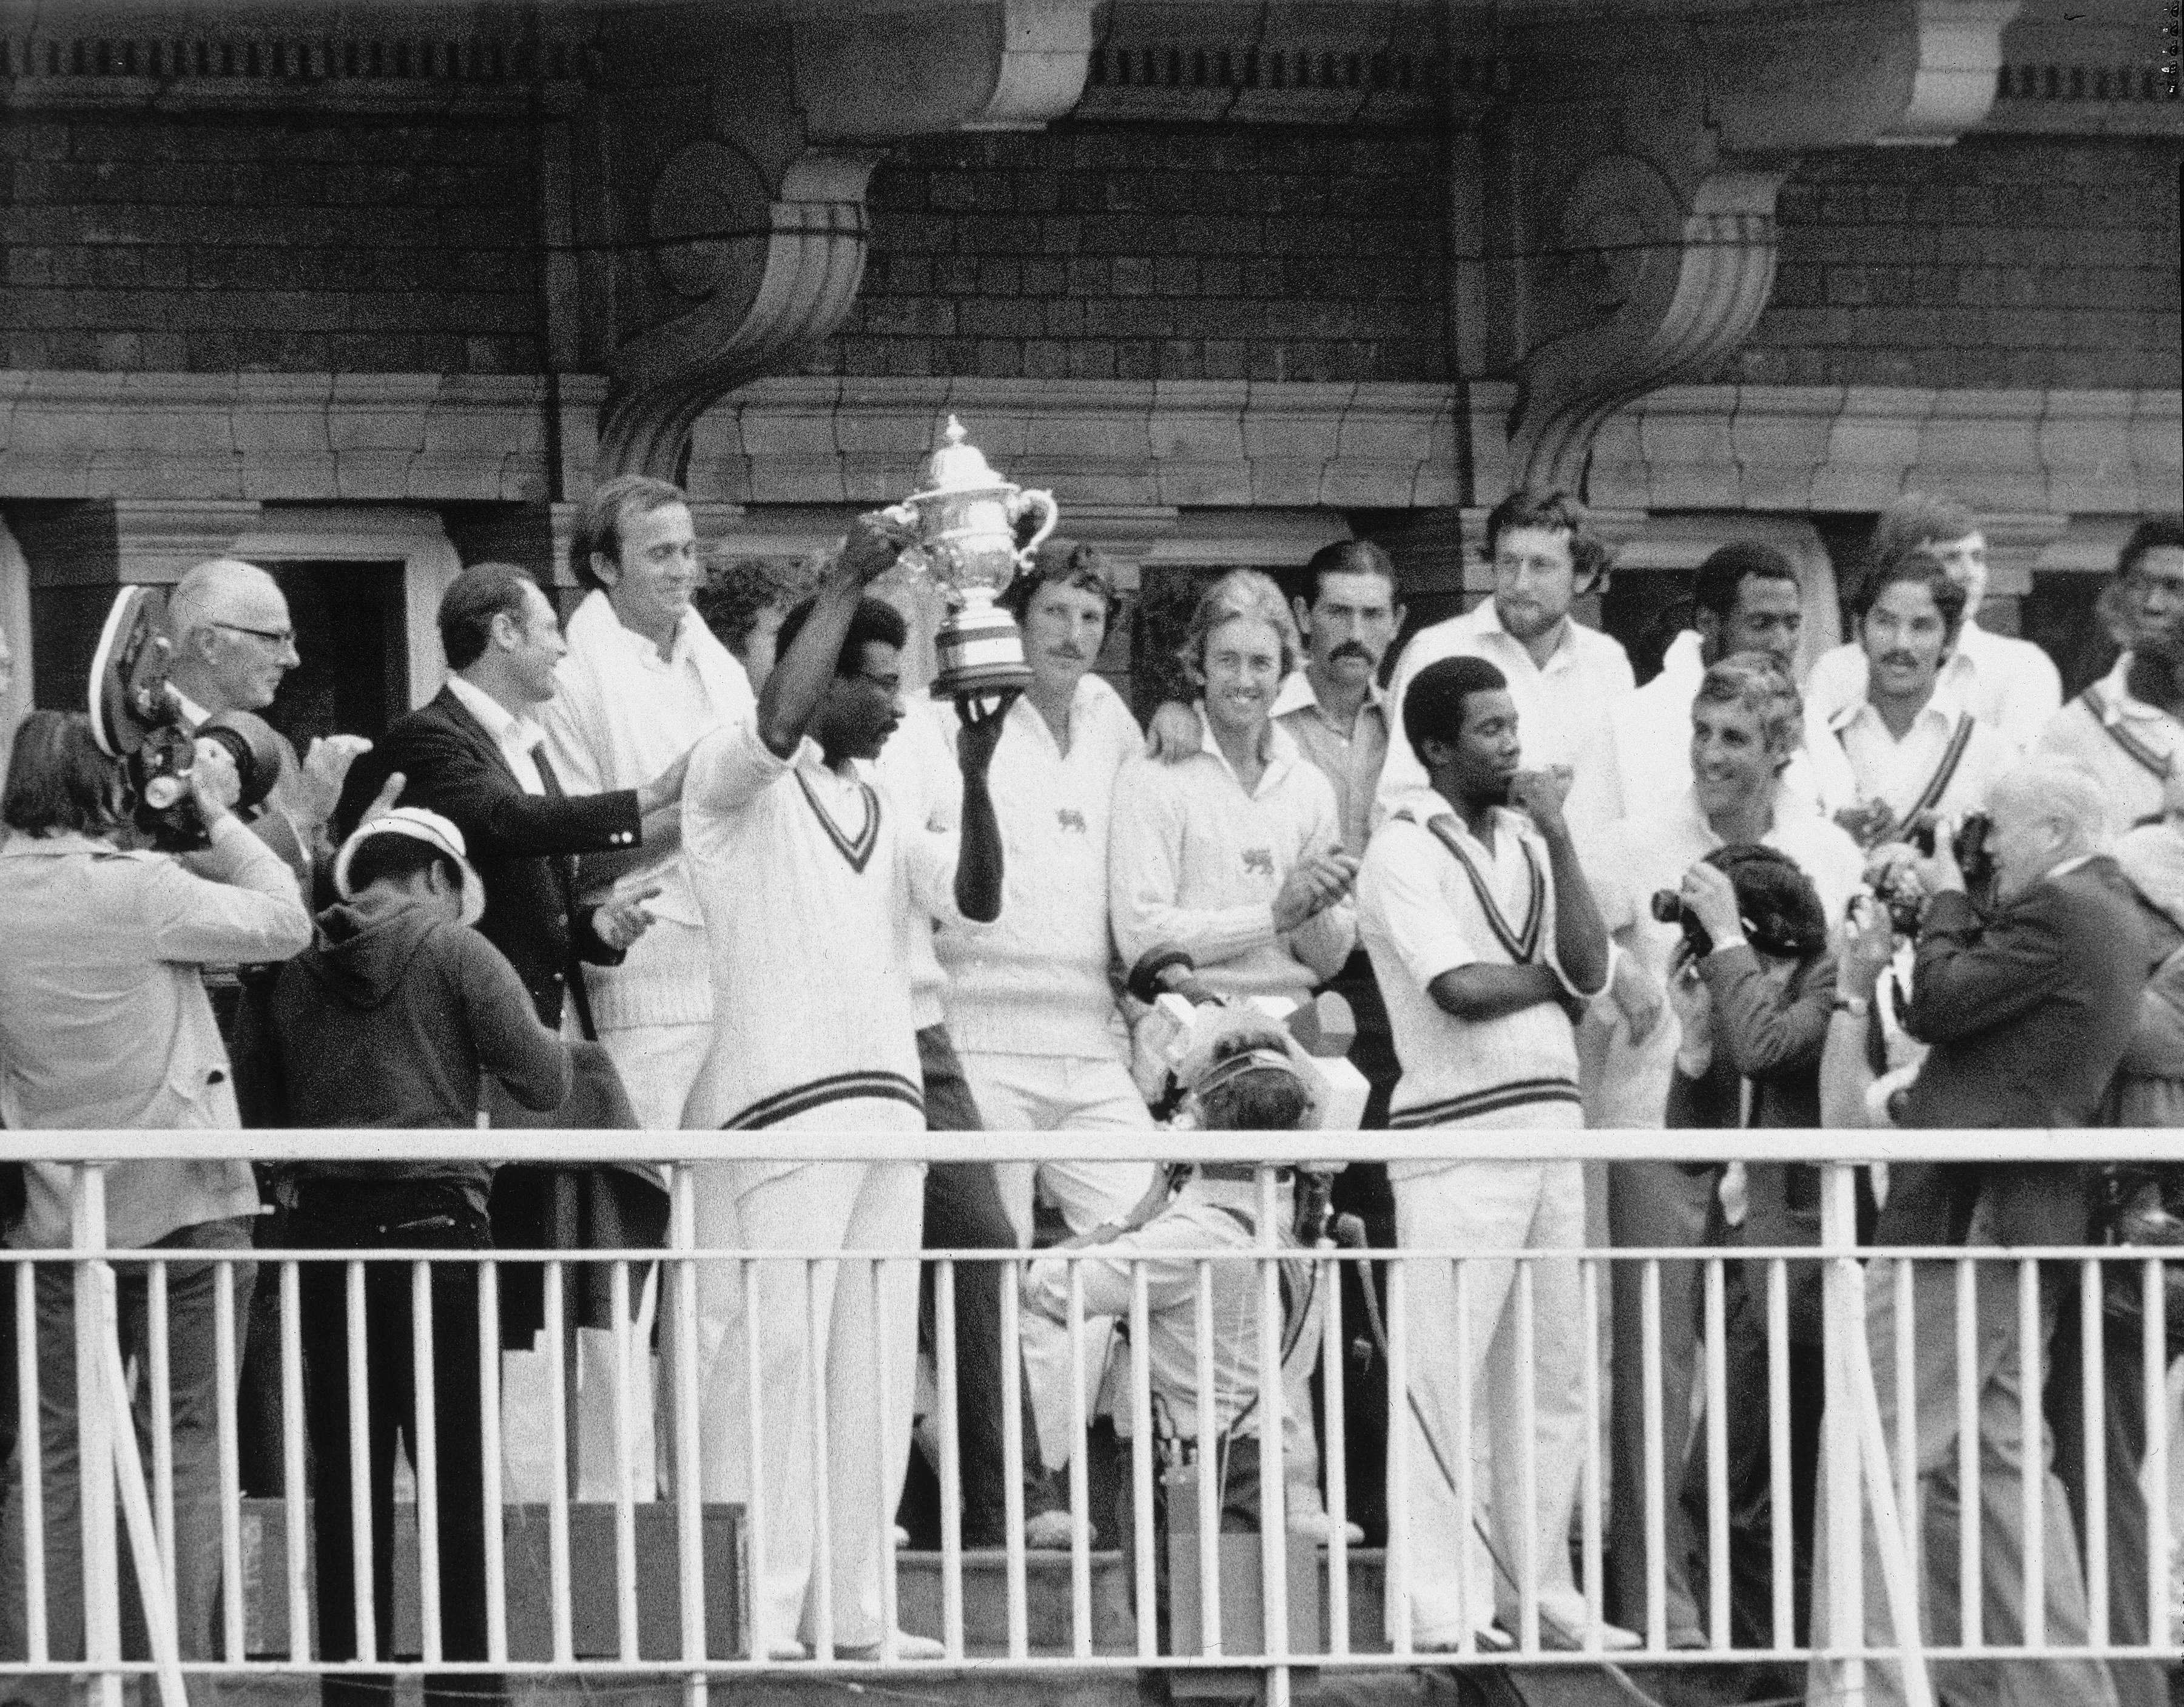 Clive Lloyd holds the World Cup aloft, but this game contained five great who failed in every final they played in